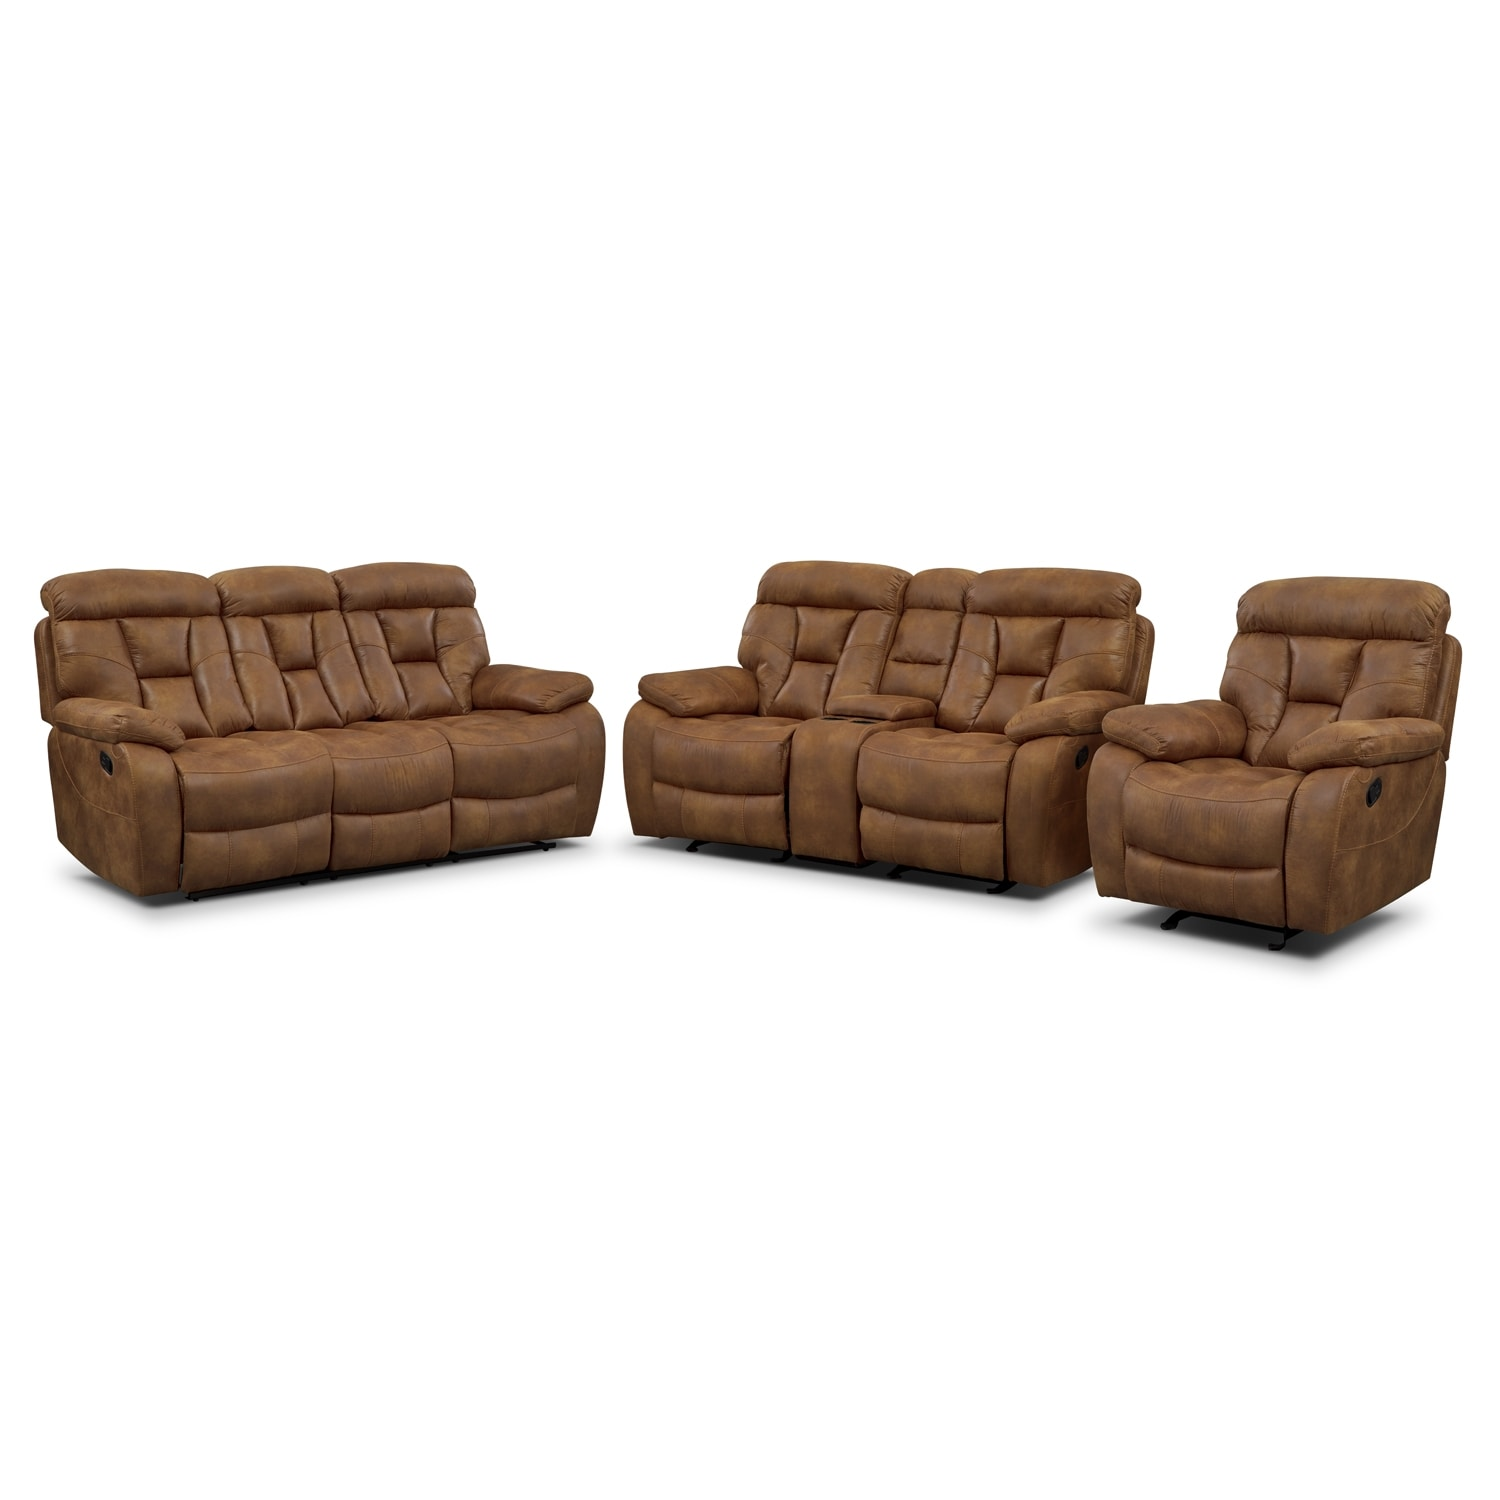 Dakota Reclining Sofa, Gliding Loveseat and Glider Recliner Set - Almond